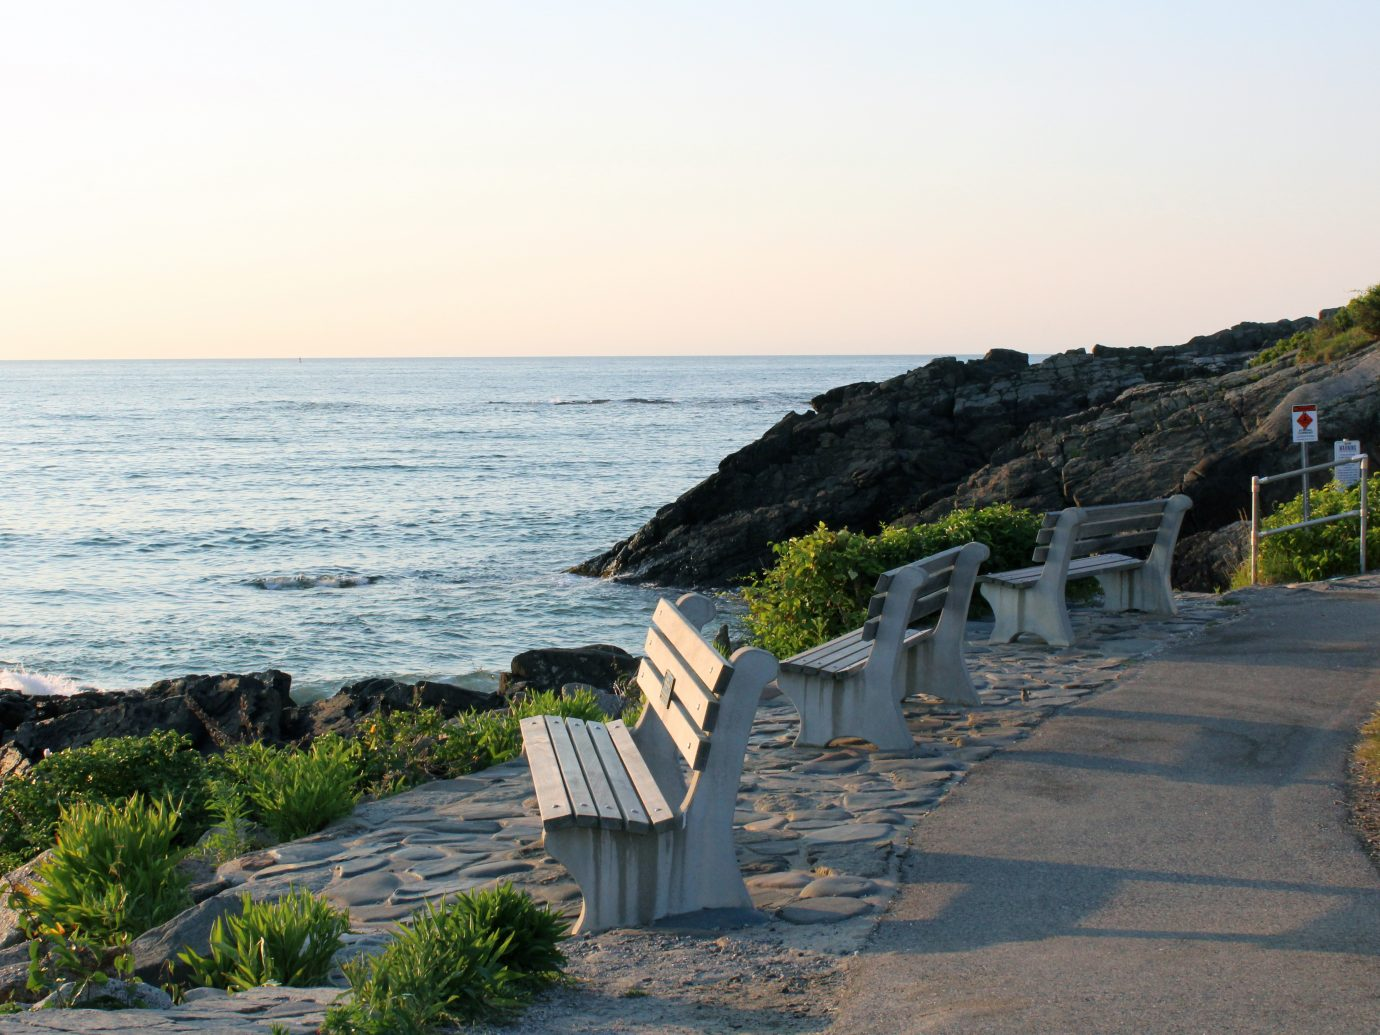 Ogunquit, Maine - The Marginal Way, a picturesque mile-long footpath along New England's Coast. This photo was taken at dawn in the summer.